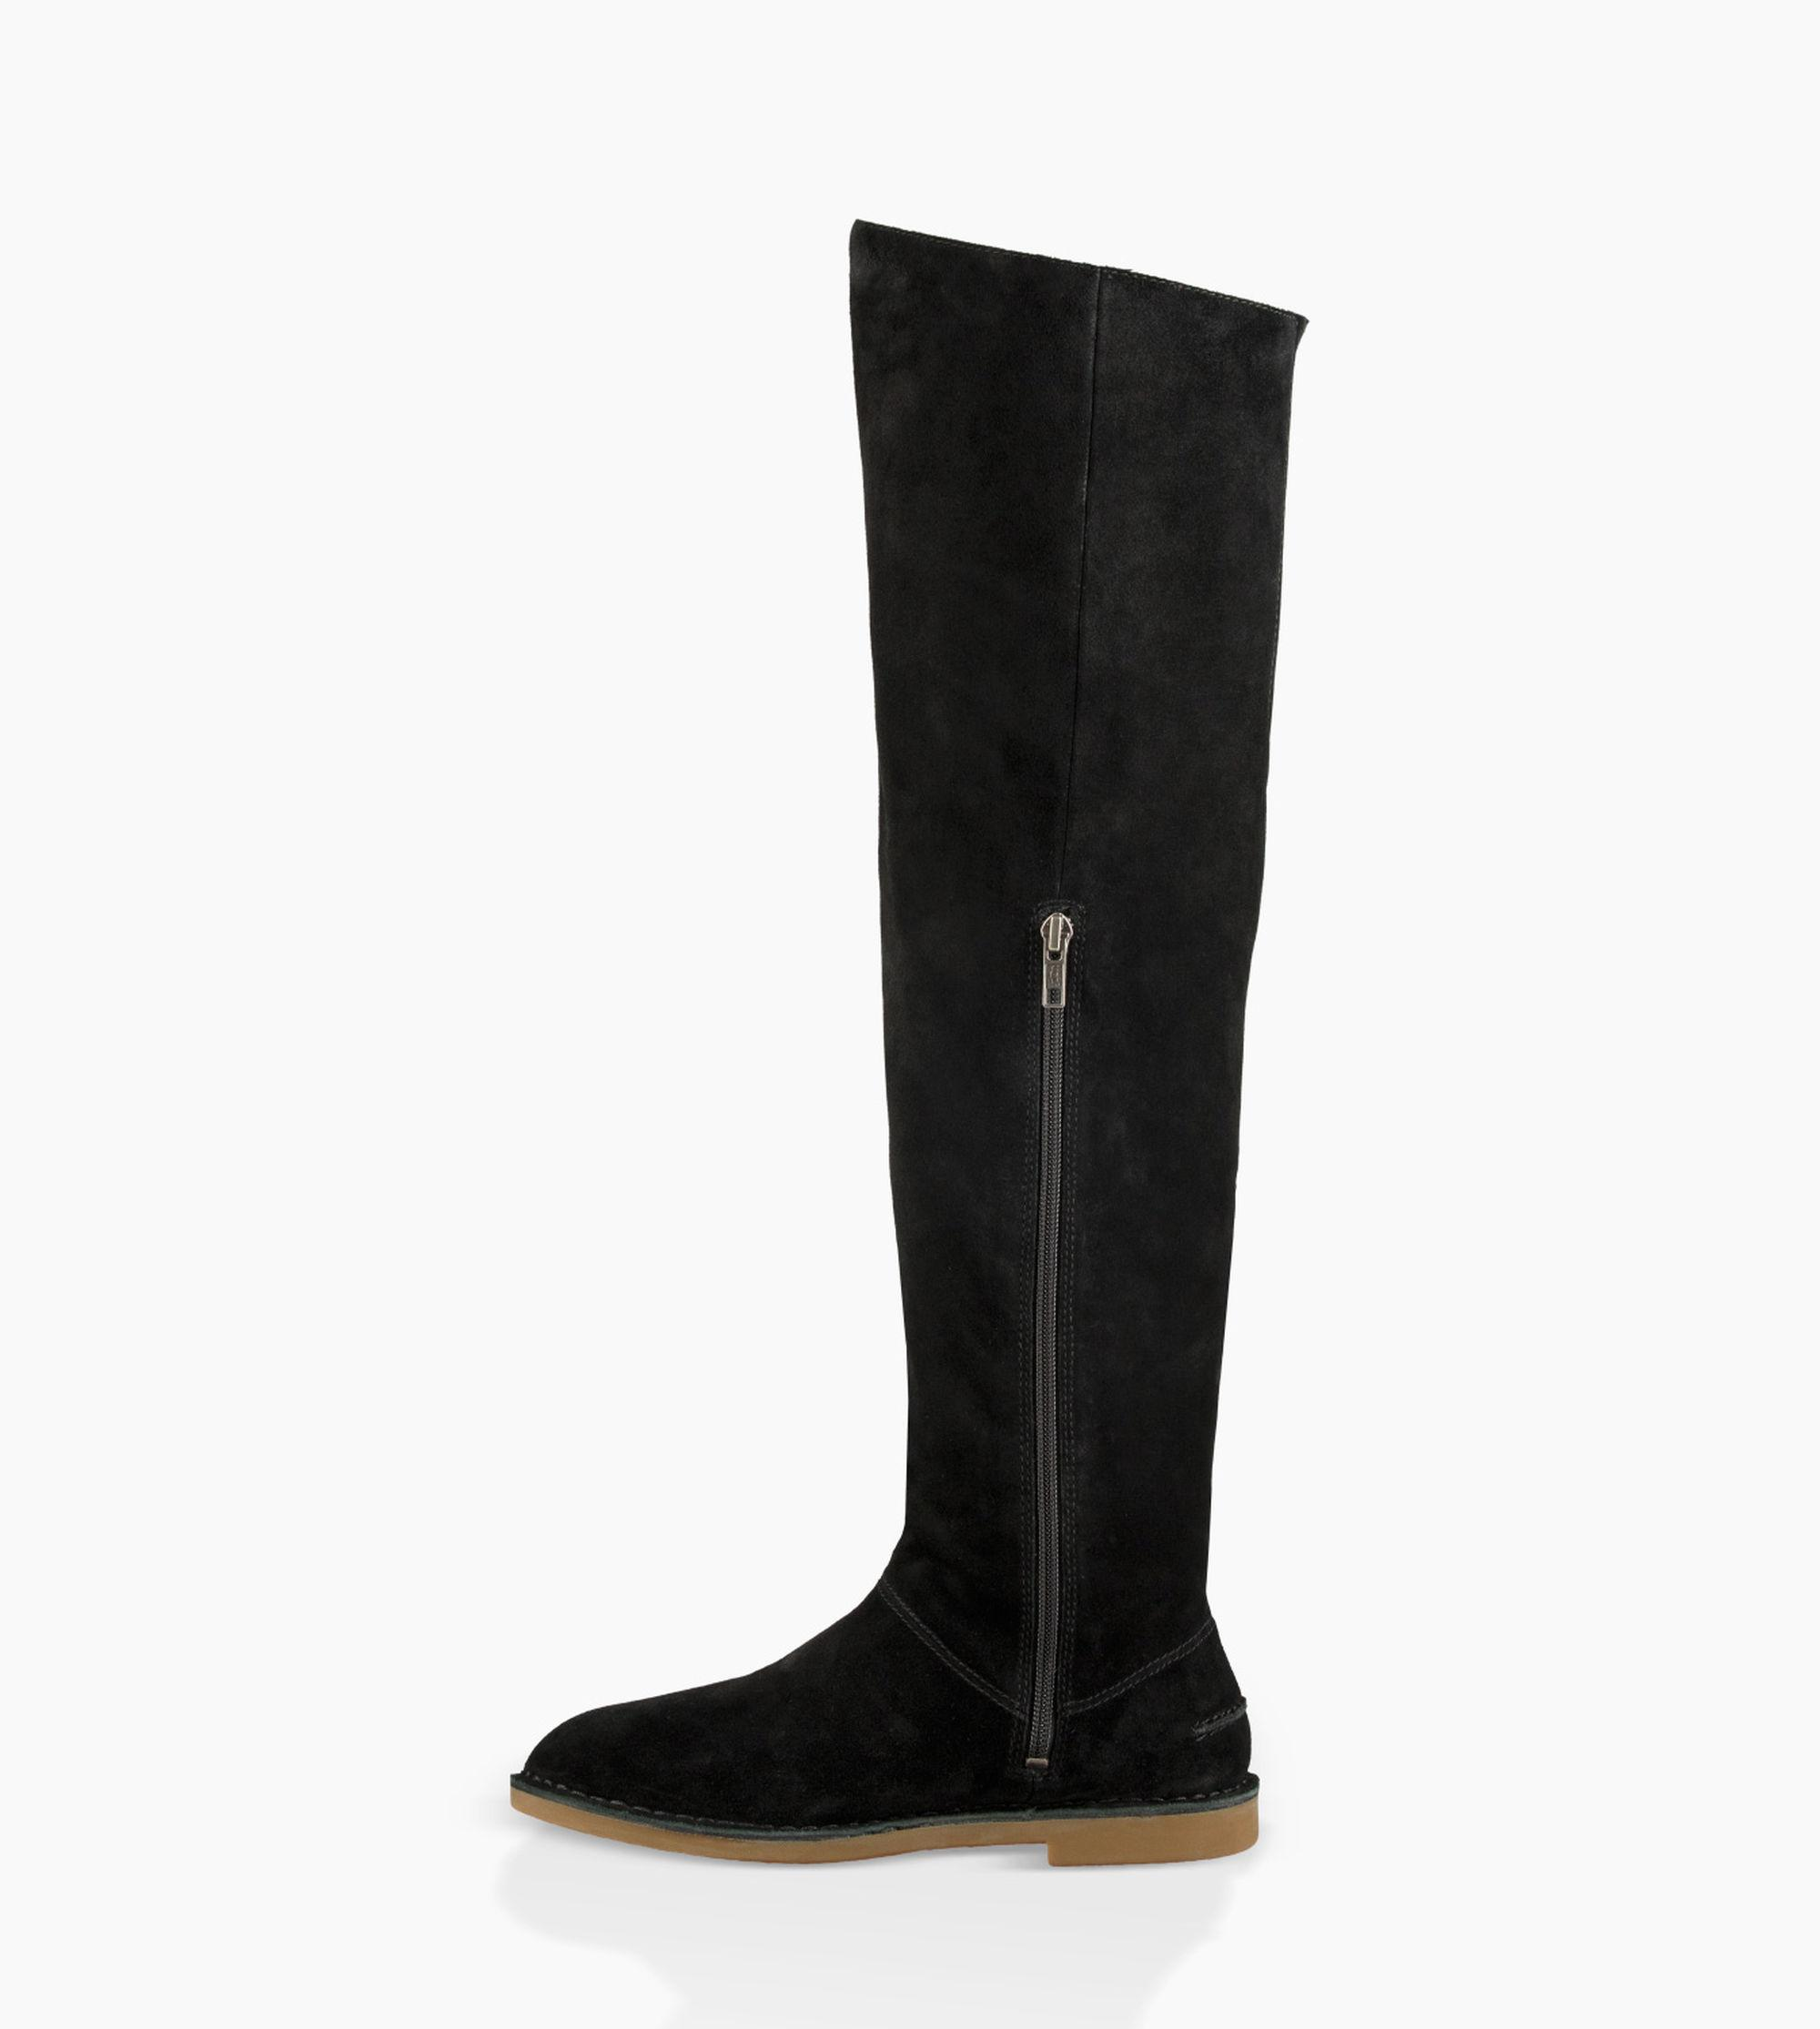 ff9f61254bc Lyst - UGG Loma Over-the-knee Boot Loma Over-the-knee Boot Lorrena ...